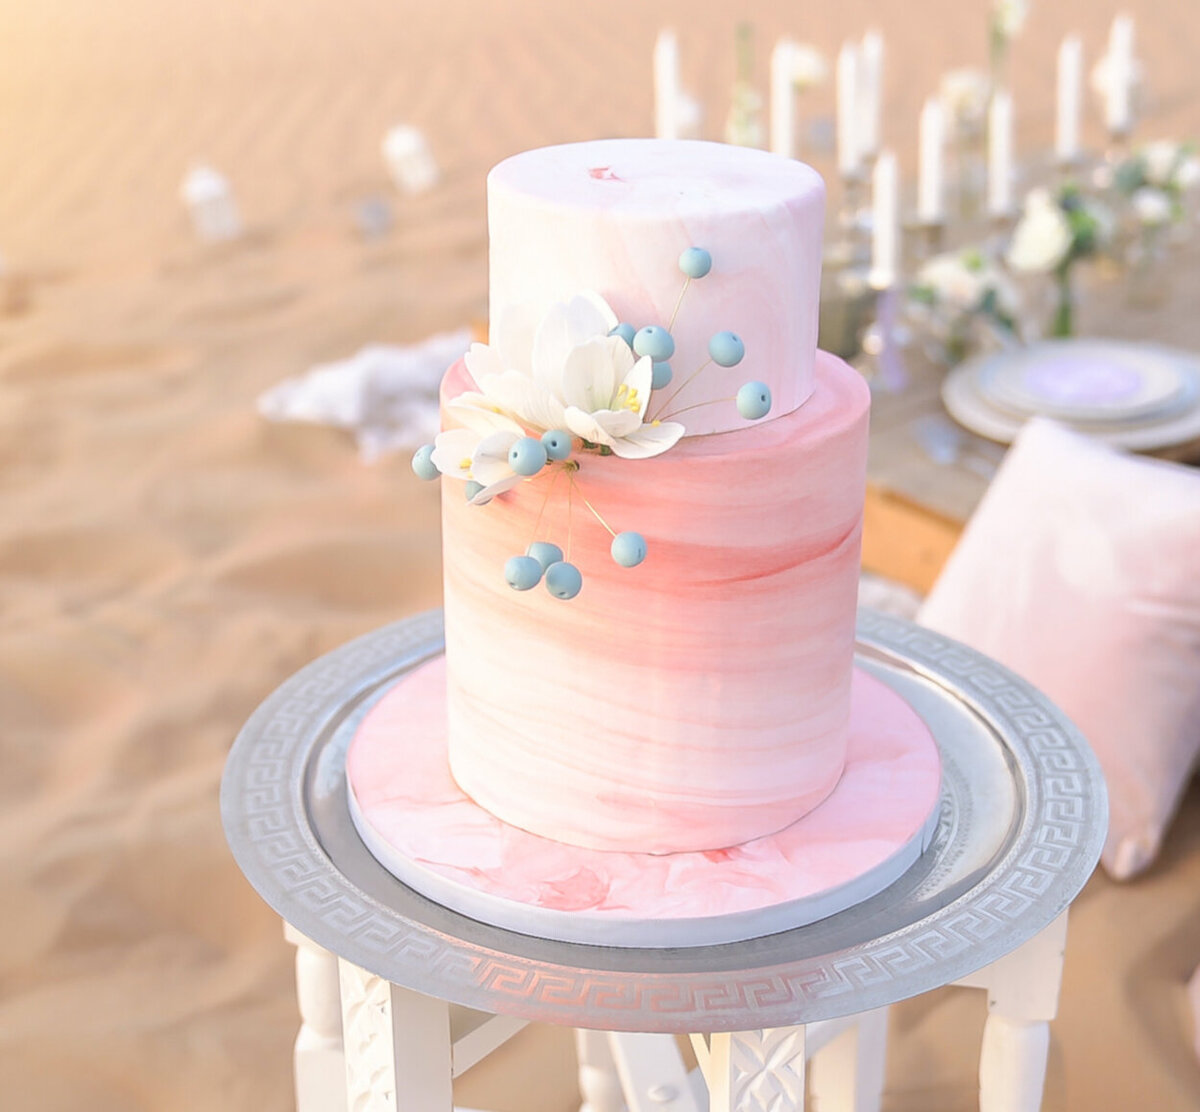 Two-tier wedding cake inspired by the movement of dunes, decorated with floral ornaments for desert elopement shoot in Dubai organized by Lovely & Planned